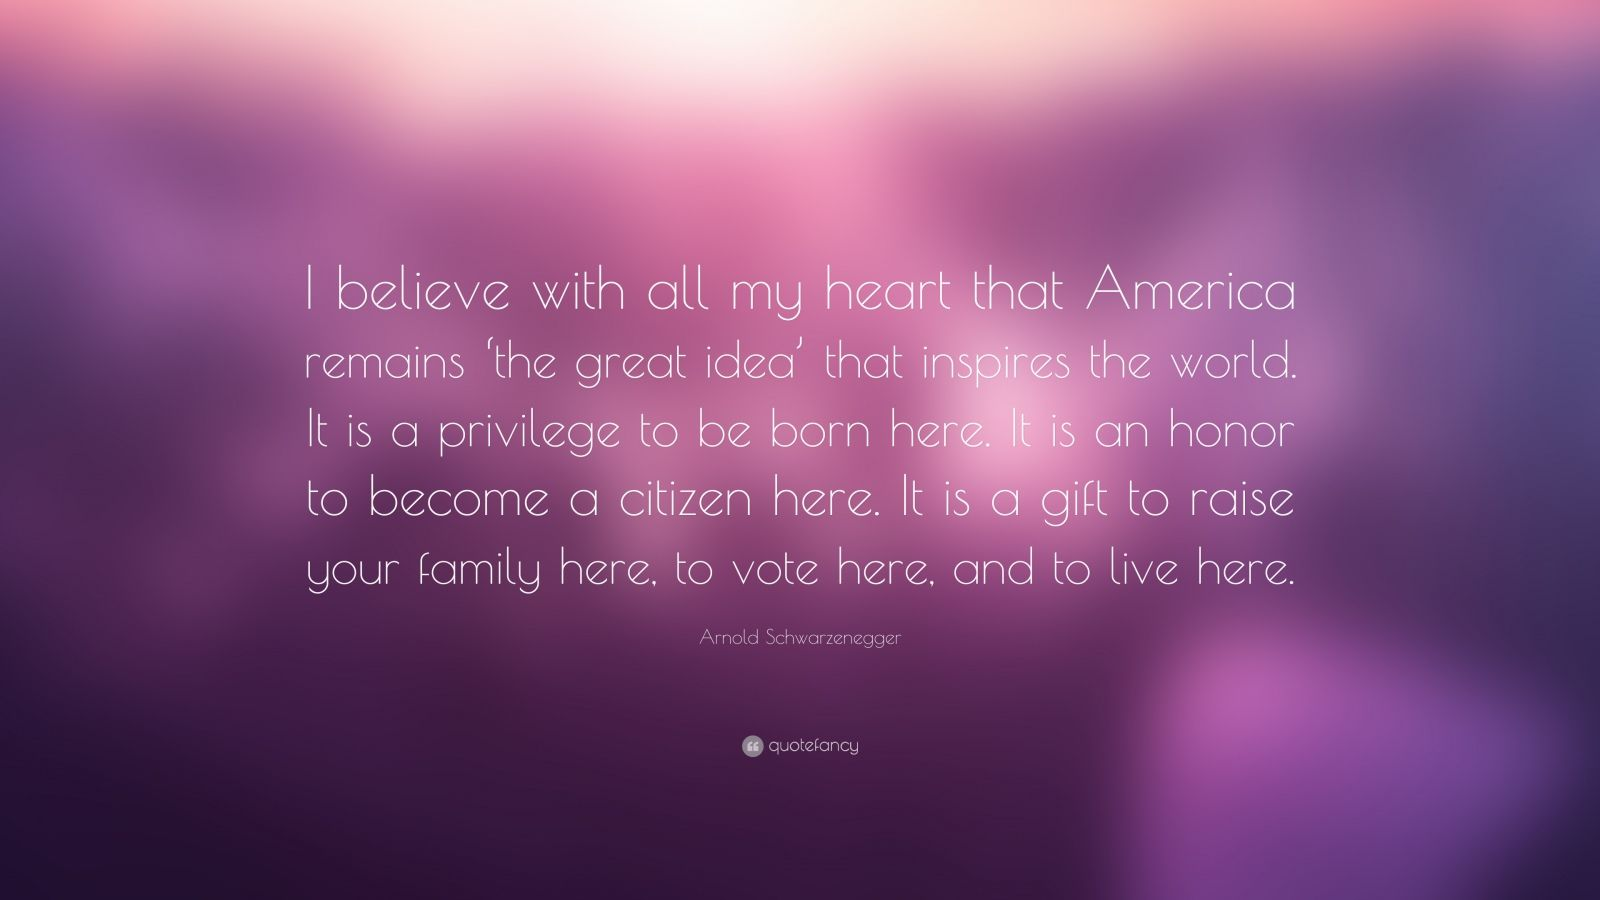 "Arnold Schwarzenegger Quote: ""I believe with all my heart that America remains 'the great idea' that inspires the world. It is a privilege to be born here. It is an honor to become a citizen here. It is a gift to raise your family here, to vote here, and to live here."""